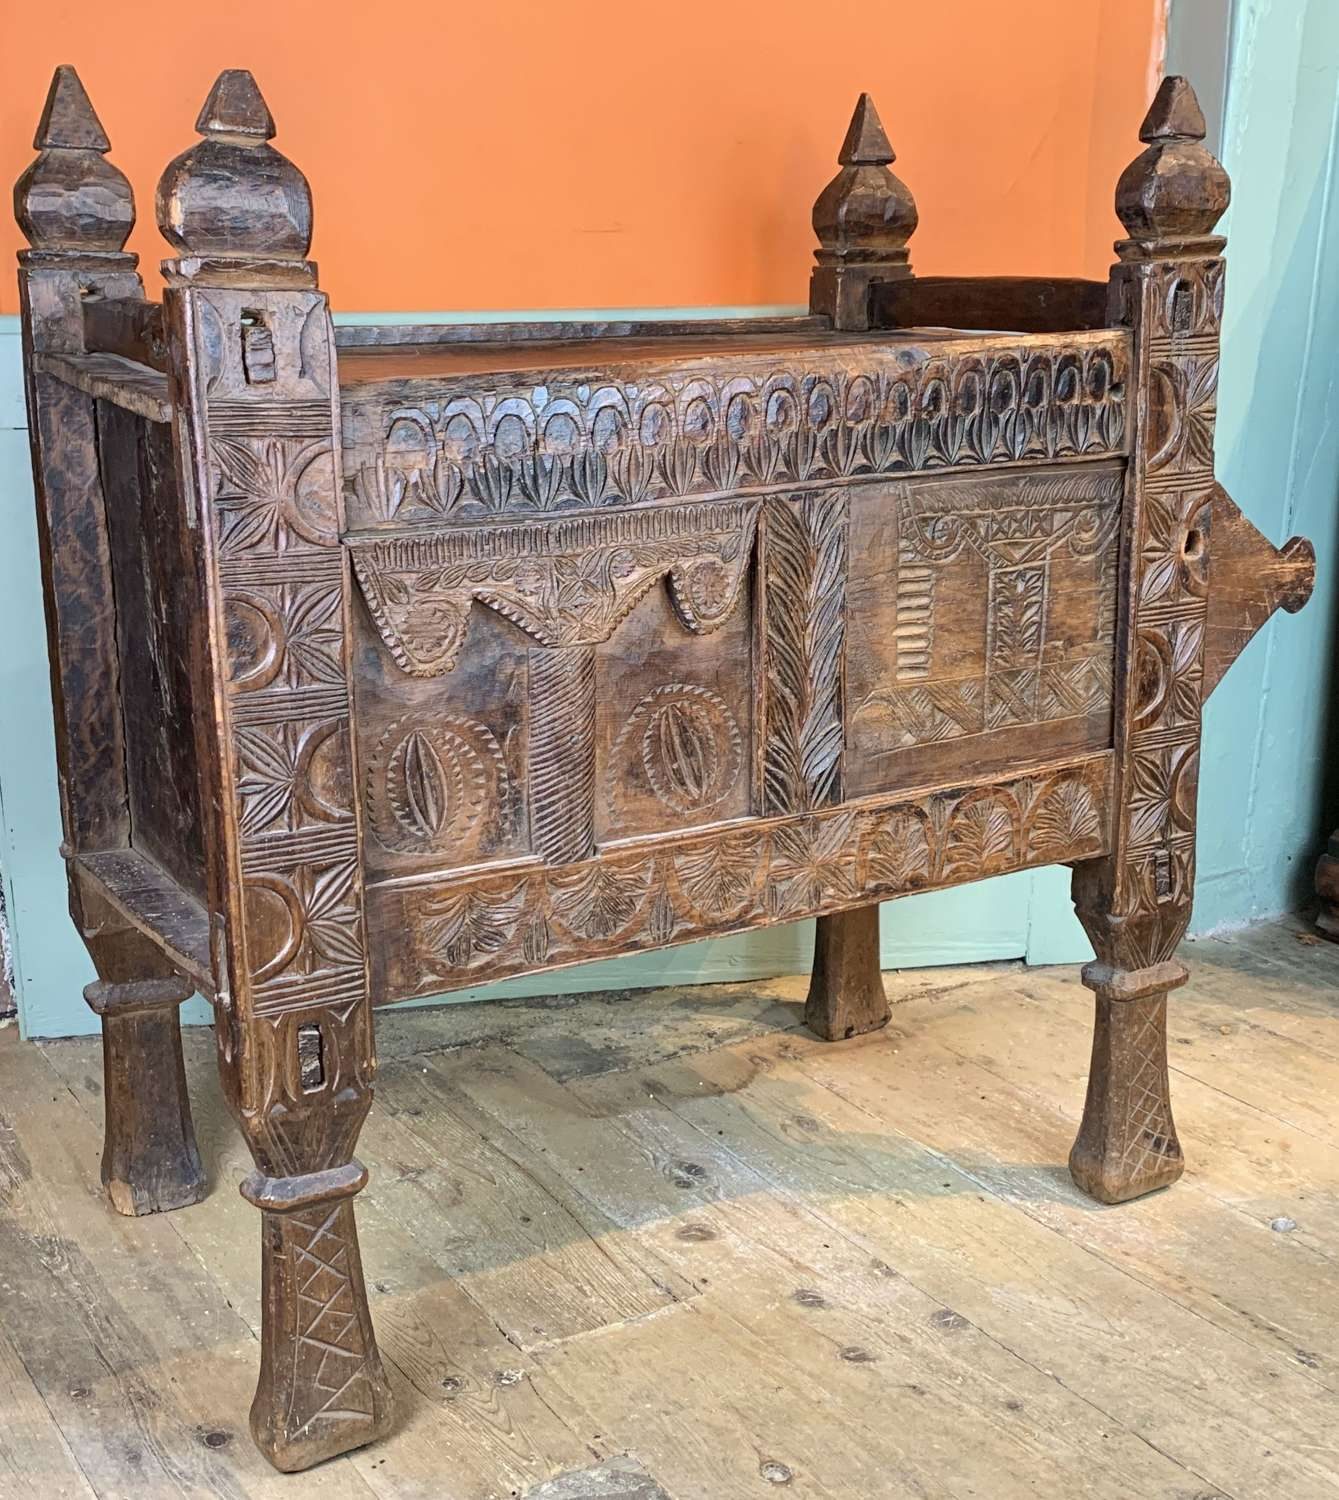 19th Century Cedar Dowry Chest from the Swat Valley, Hindu-Kush